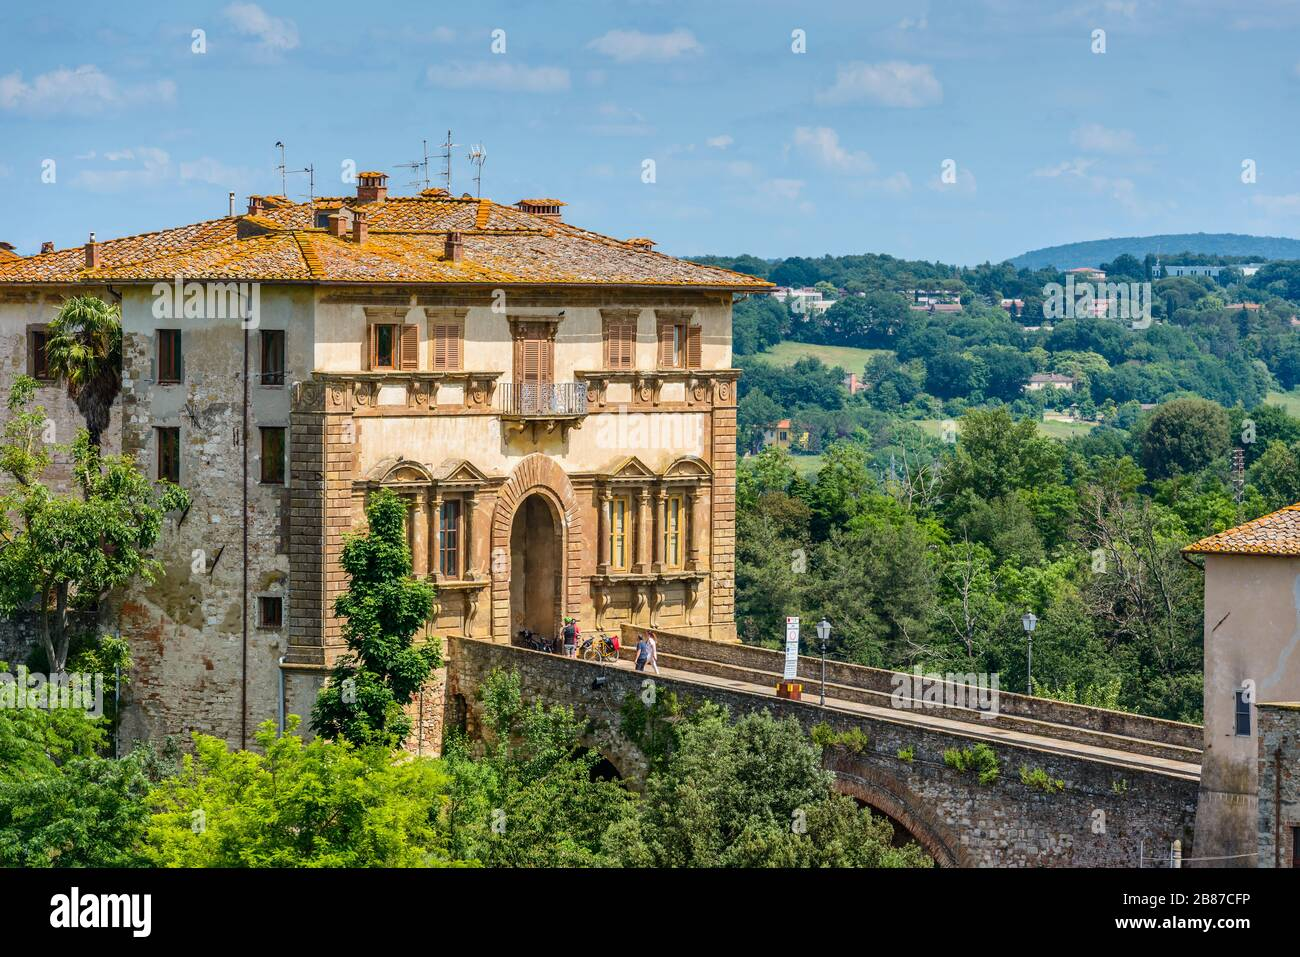 Colle di Val d'Elsa, Tuscany / Italy: The Campana Palace (Palazzo Campana) gate into the old town - Tuscan mannerist architecture of the 16th century. Stock Photo